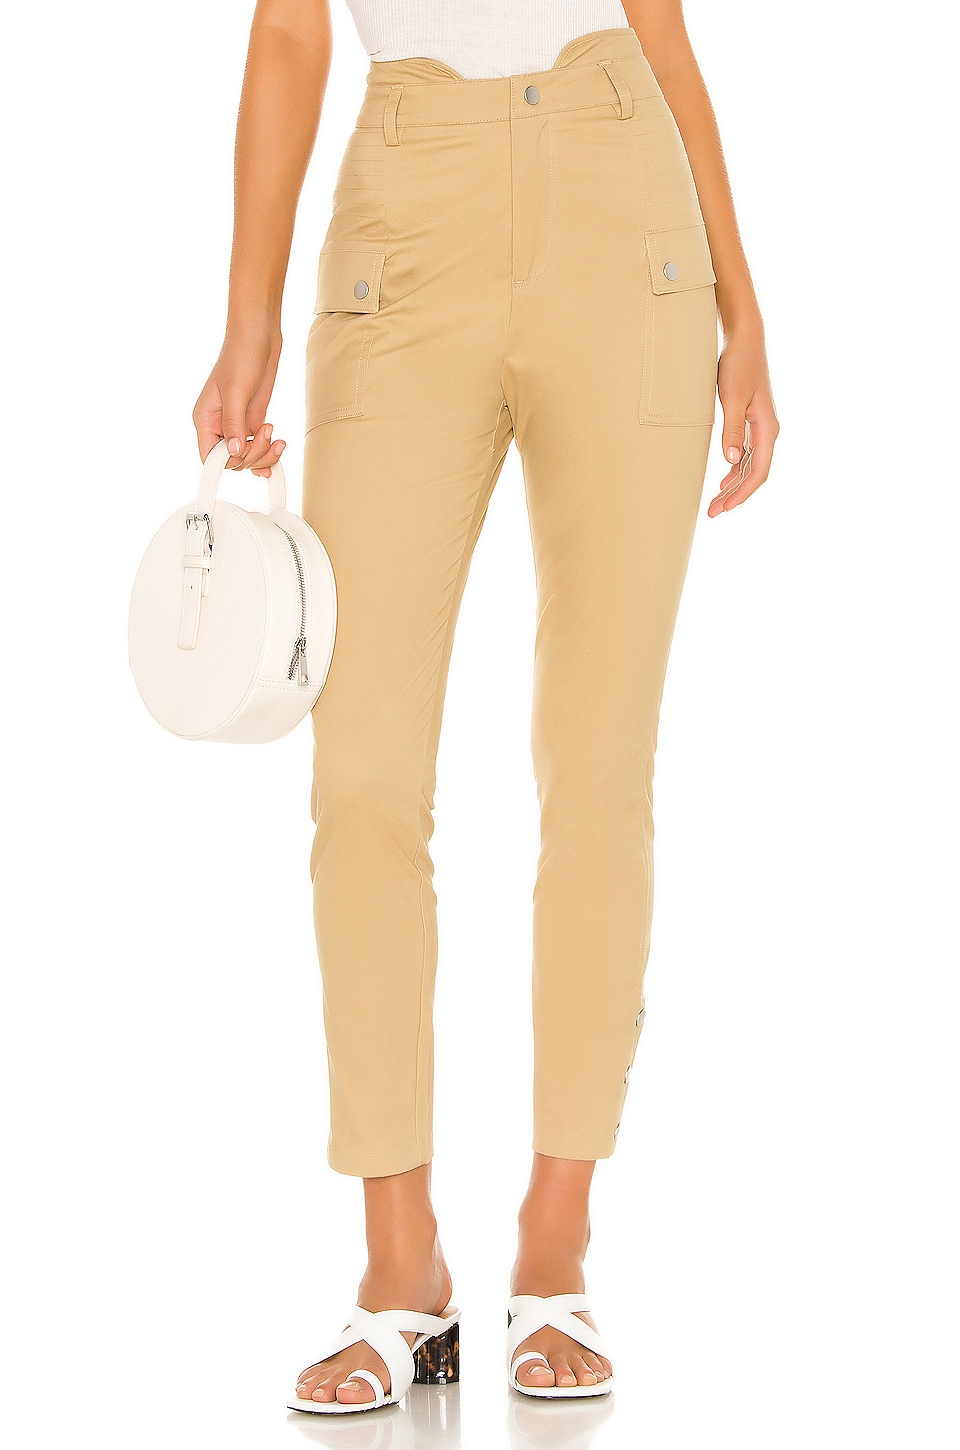 Lovers + Friends Jack Pants in Khaki